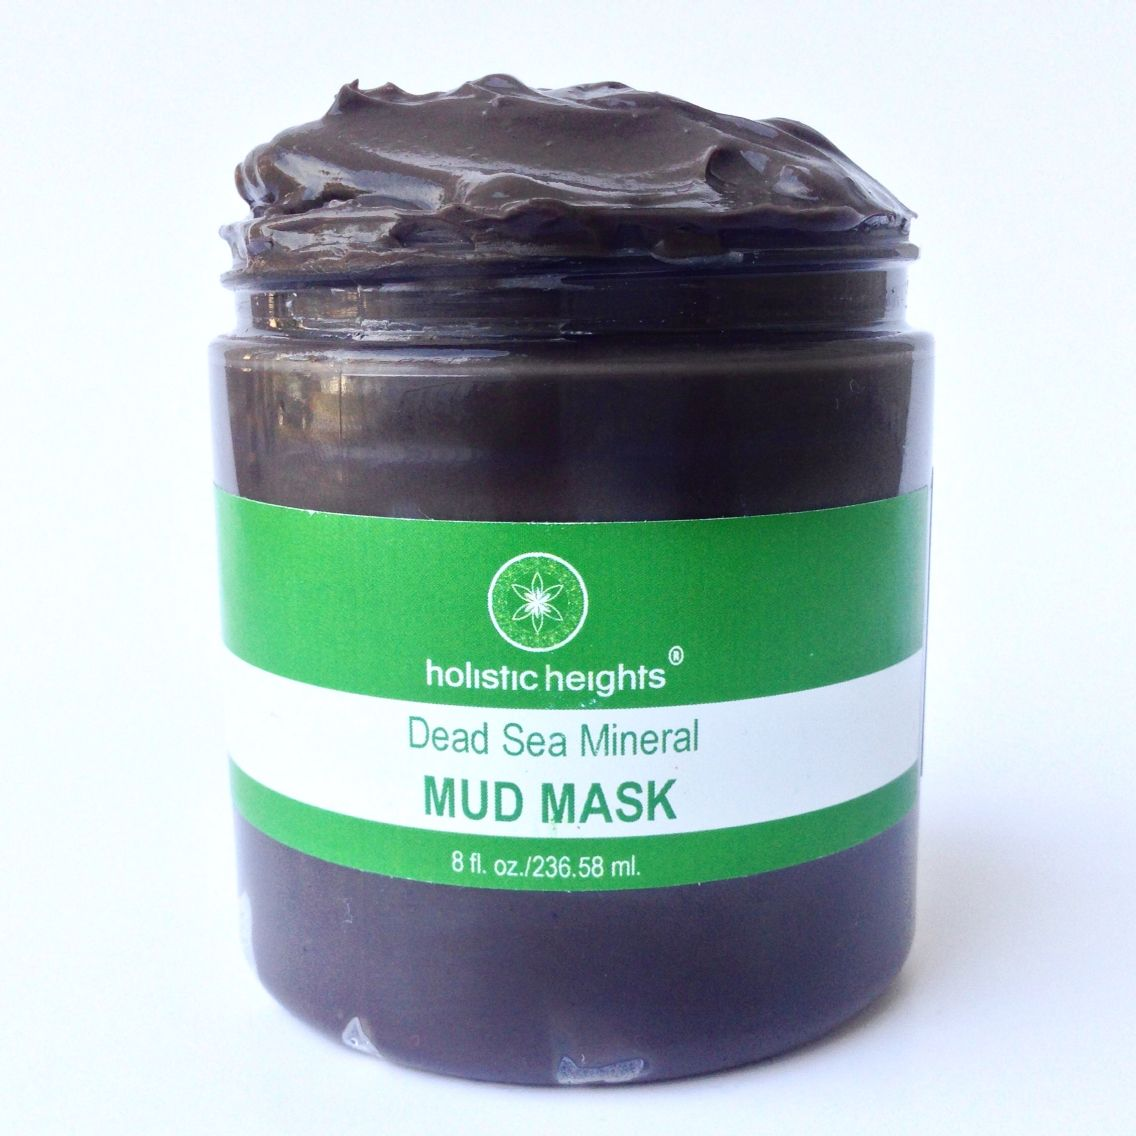 Holistic Heights Dead Sea Mud Mask is unique due to its